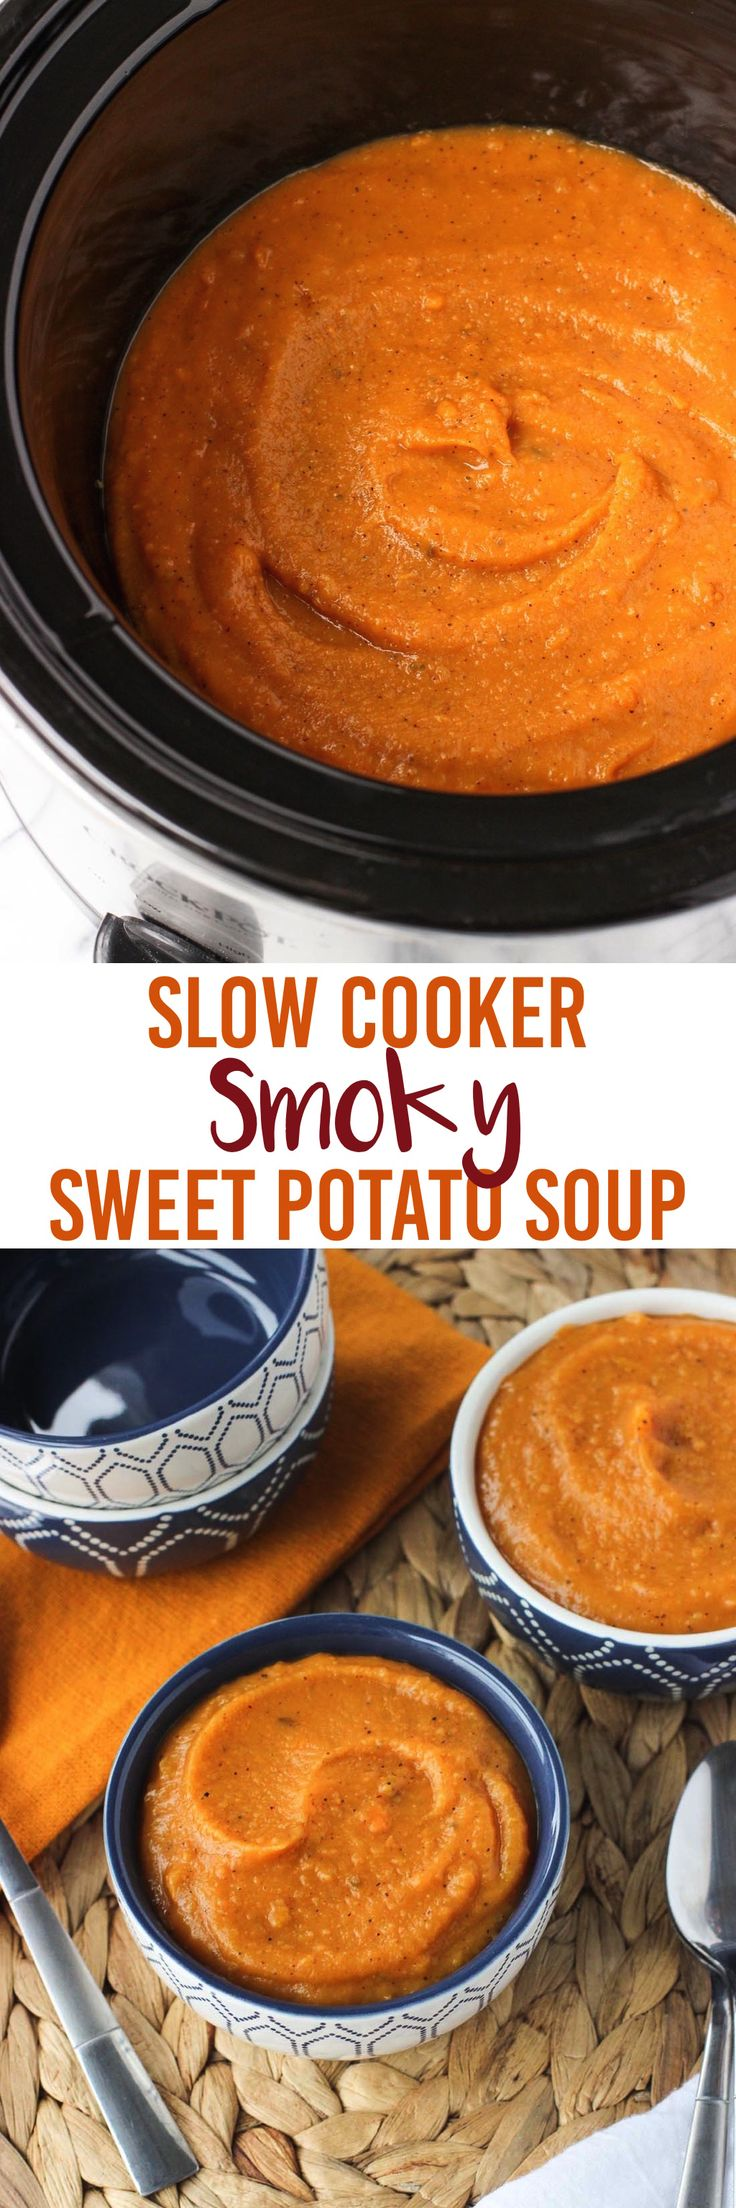 This recipe for smoky sweet potato soup is thick, creamy, and dairy-free! Flavored with a delicious blend of smoky spices, this healthier slow cooker soup has quick and easy prep!